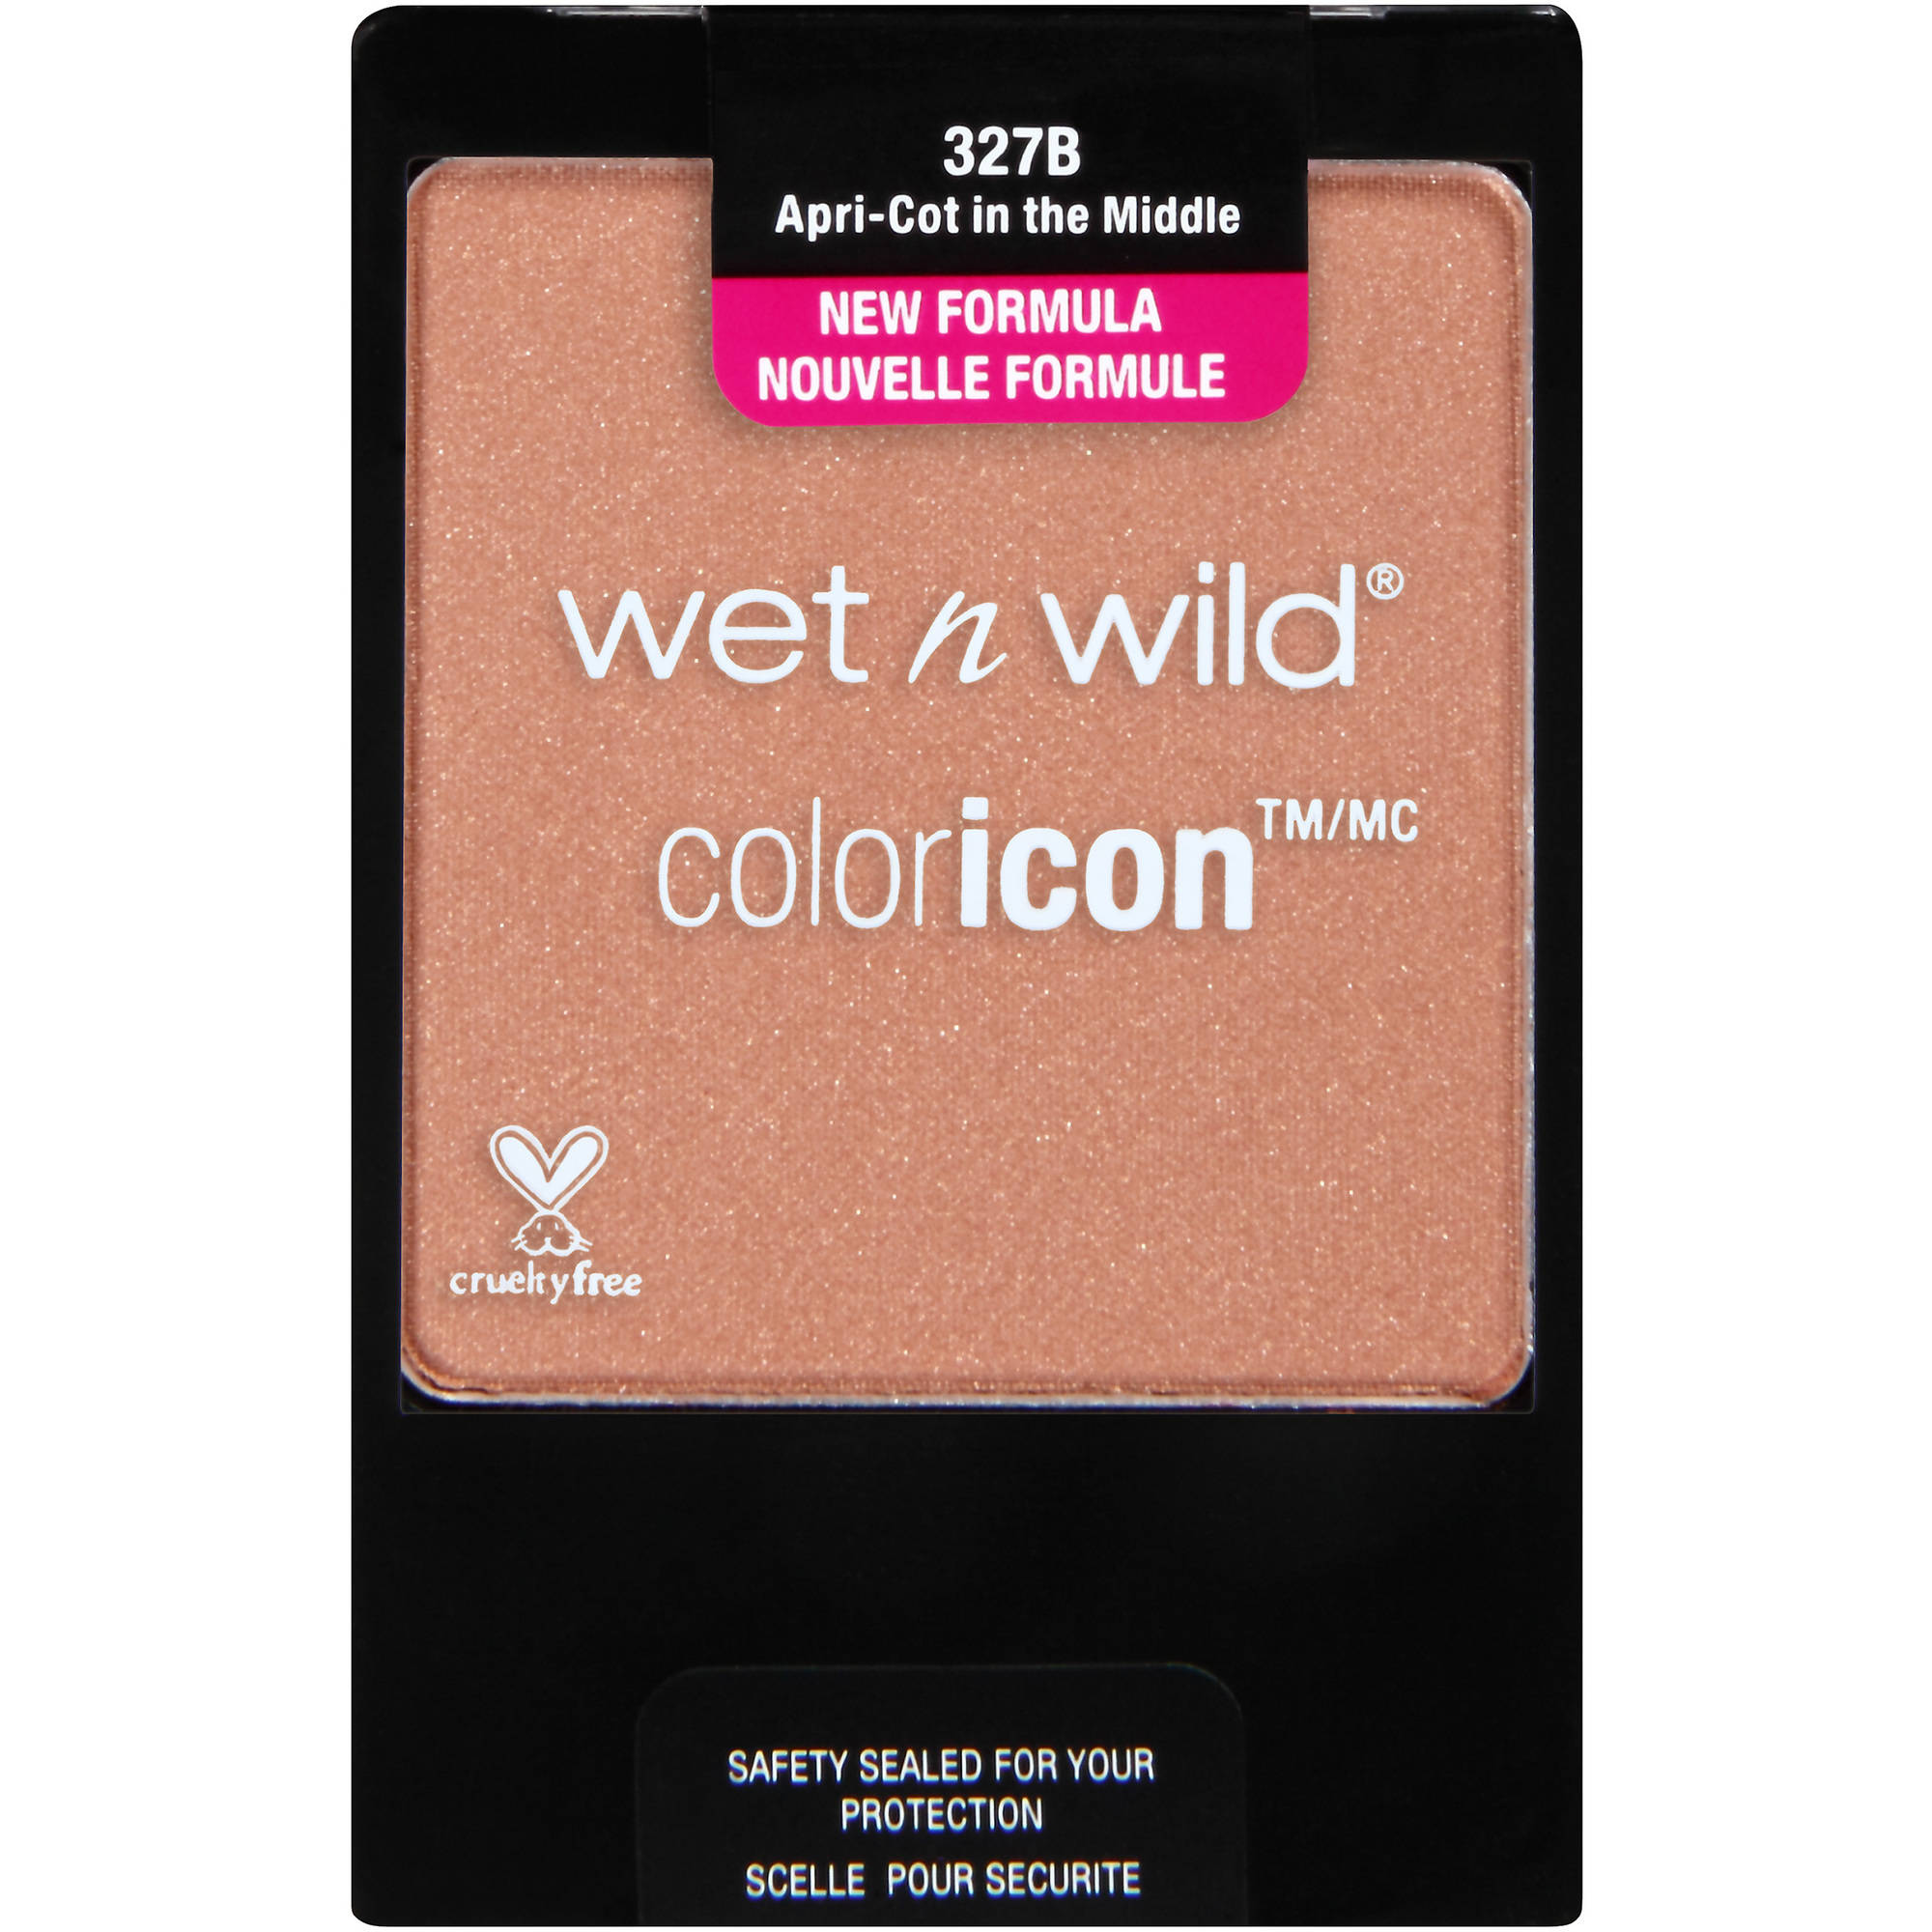 Wet n Wild ColorIcon Blush, 0.20 oz